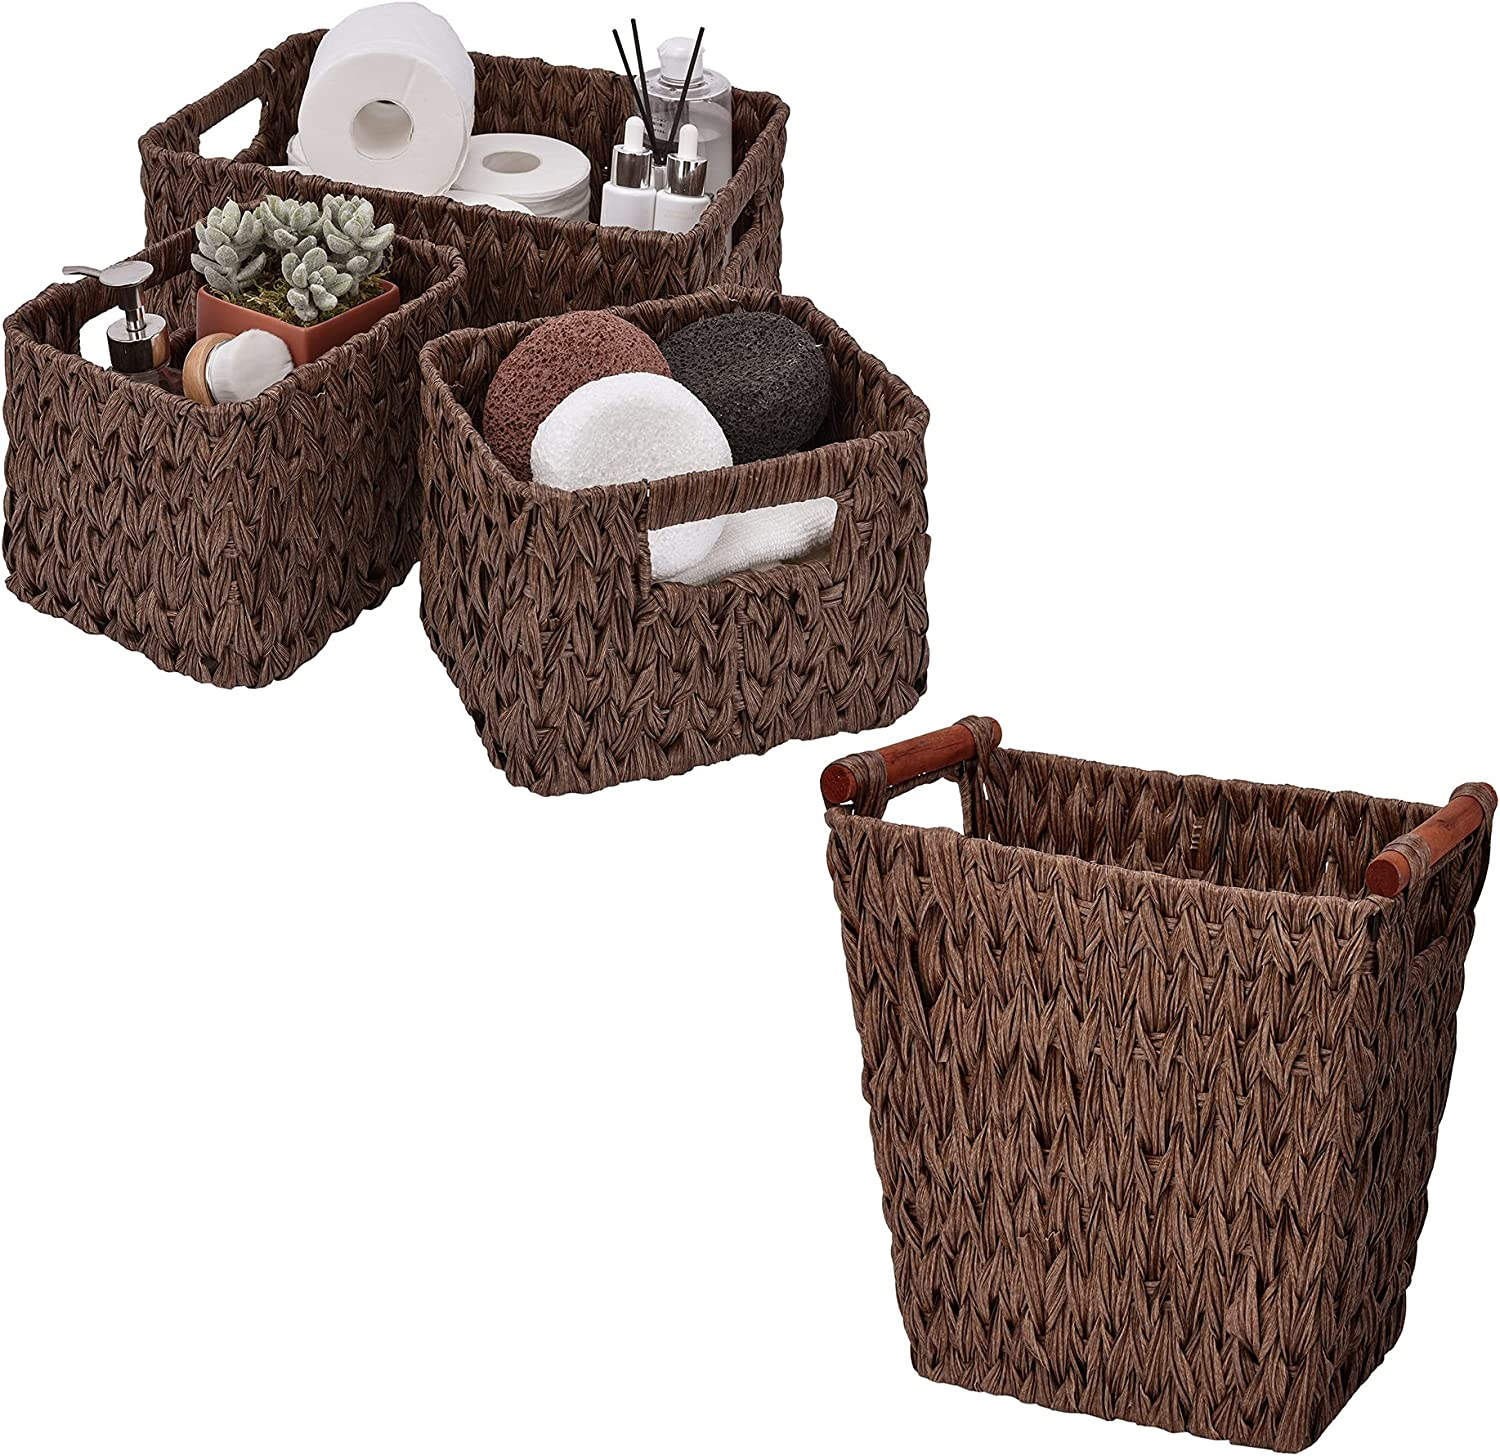 GRANNY SAYS Bundle of 3-Pack Wicker 1-Pack Max 82% OFF Beauty products Baskets Bath